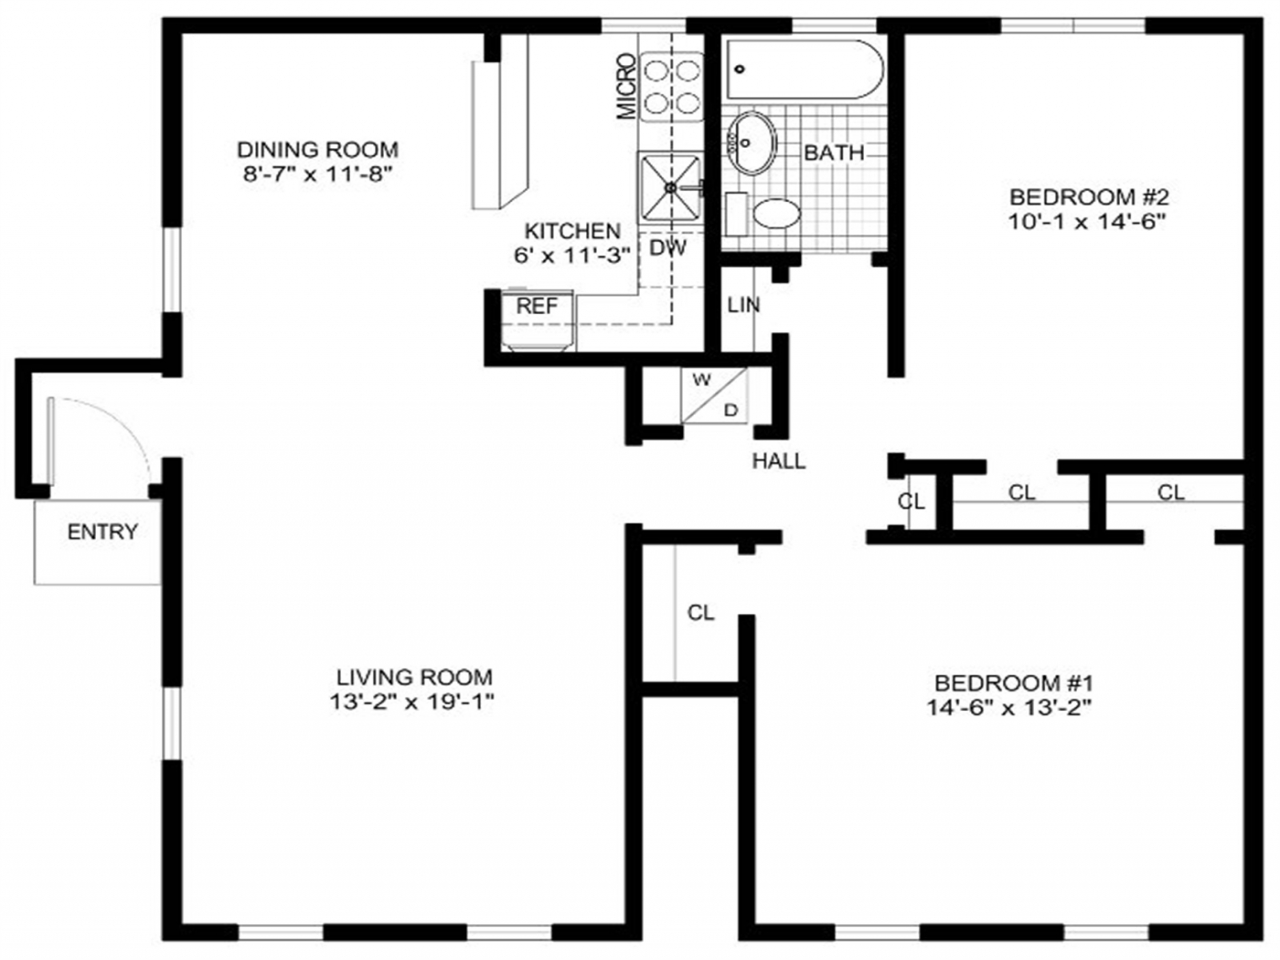 Free Printable Furniture Templates For Floor Plans Furniture Placement Templates Free Printable